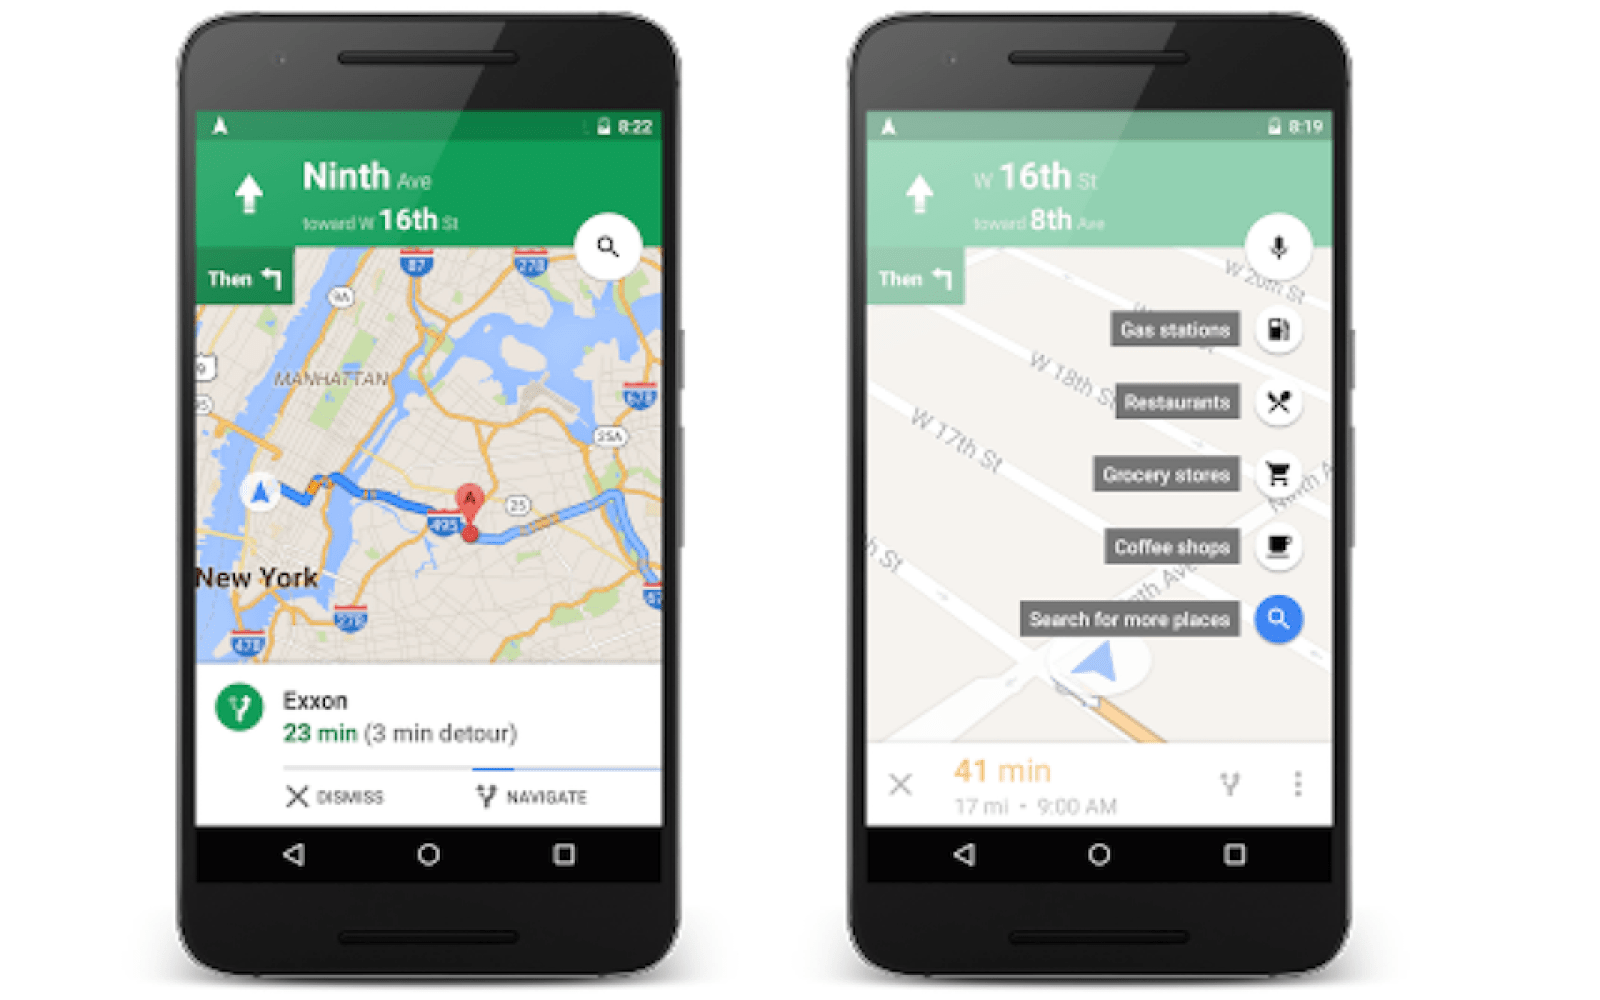 Google Maps for Android gets handy gas price comparisons